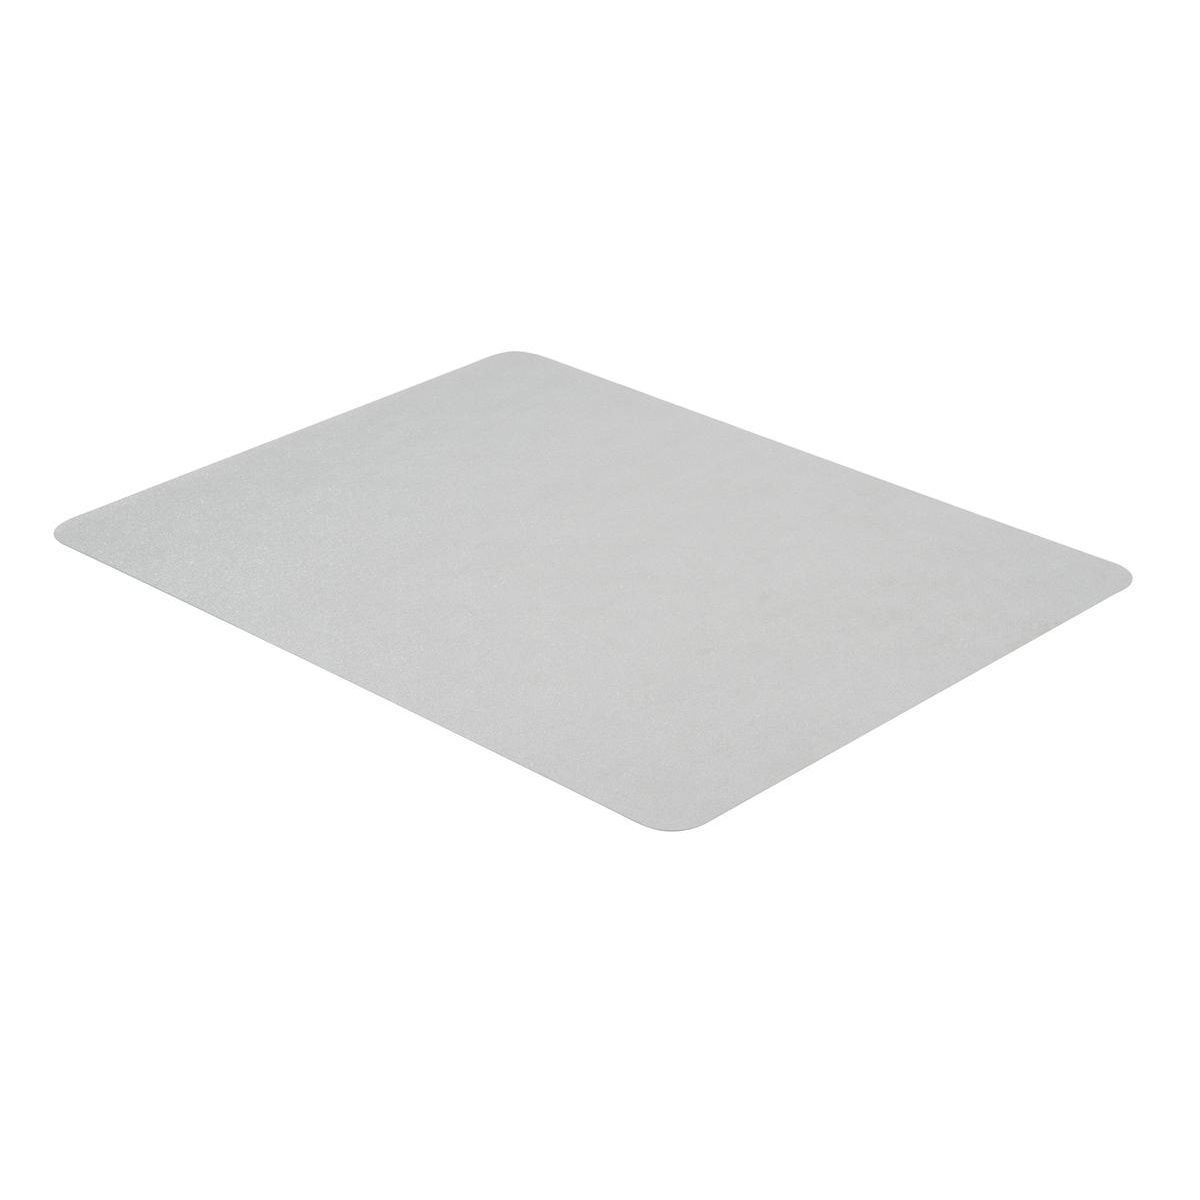 Cleartex Valuemat Chair Mat PVC Rectangular For Hard Floors 1200x750mm Clear Ref FC127517EV